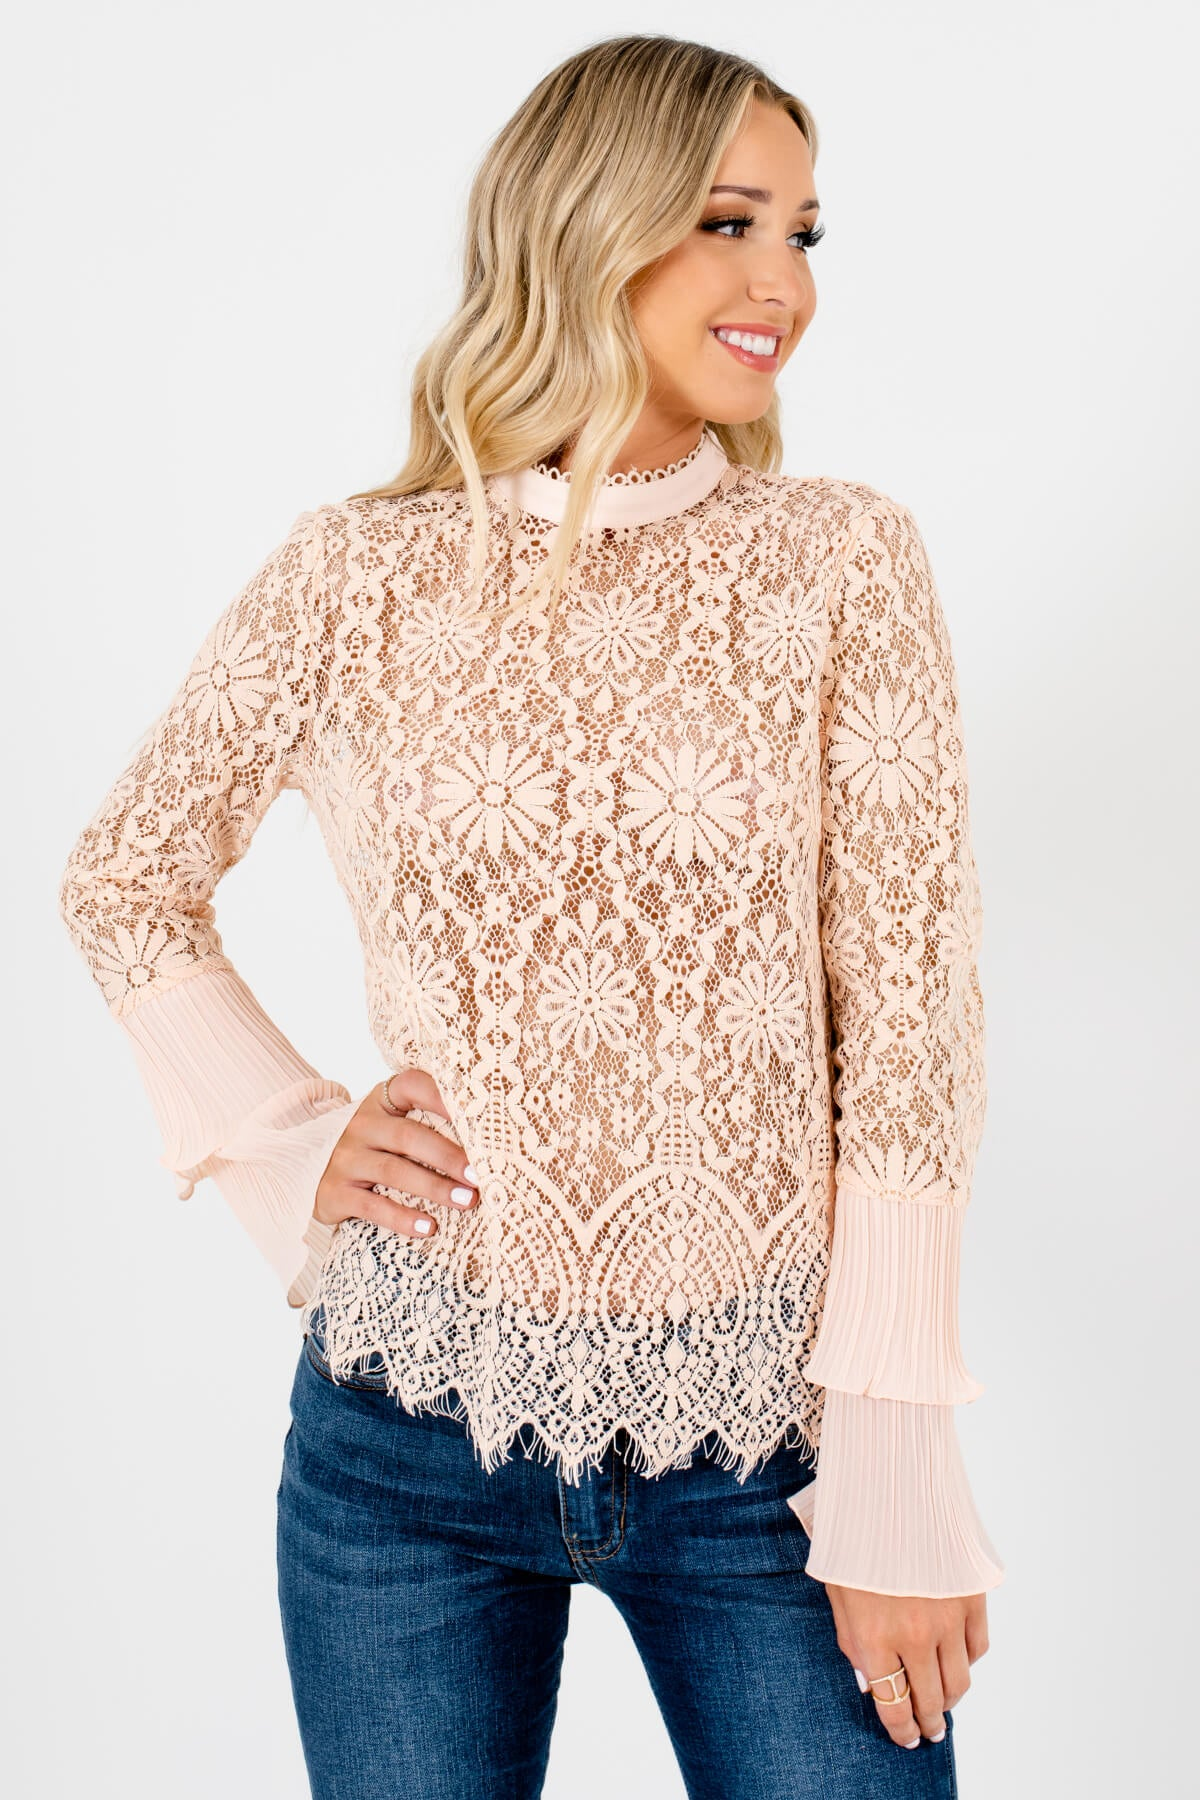 Peach Pink Semi-Sheer Lace Material Boutique Tops for Women